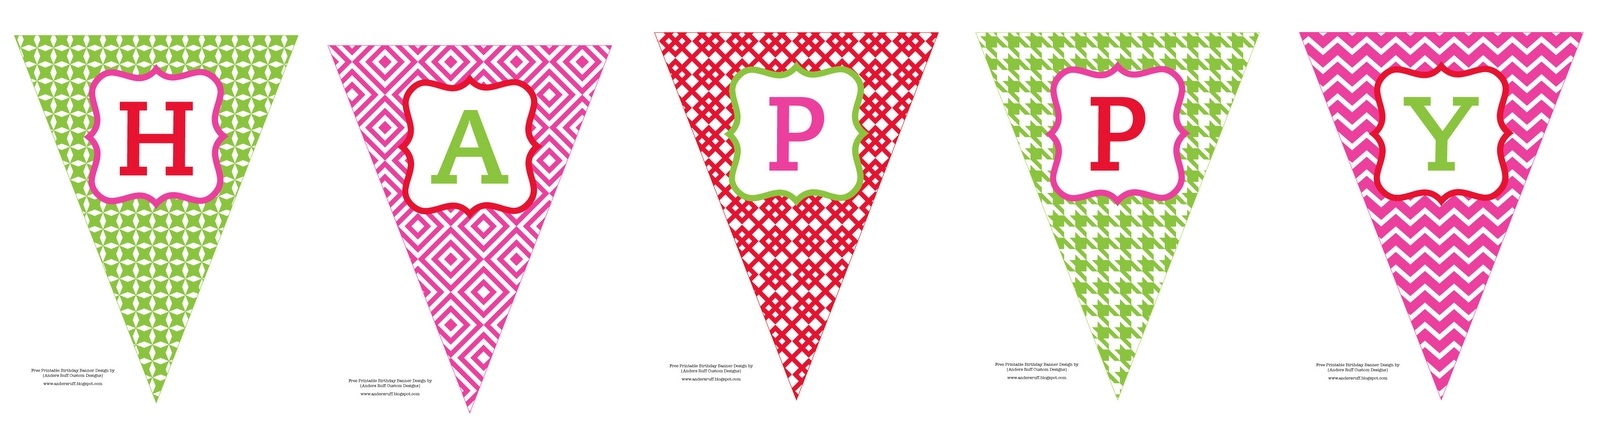 free birthday banners personalized with photo ; free-printable-happy-birthday-banner-anders-ruff-custom-designs-with-free-printable-birthday-banners-personalized